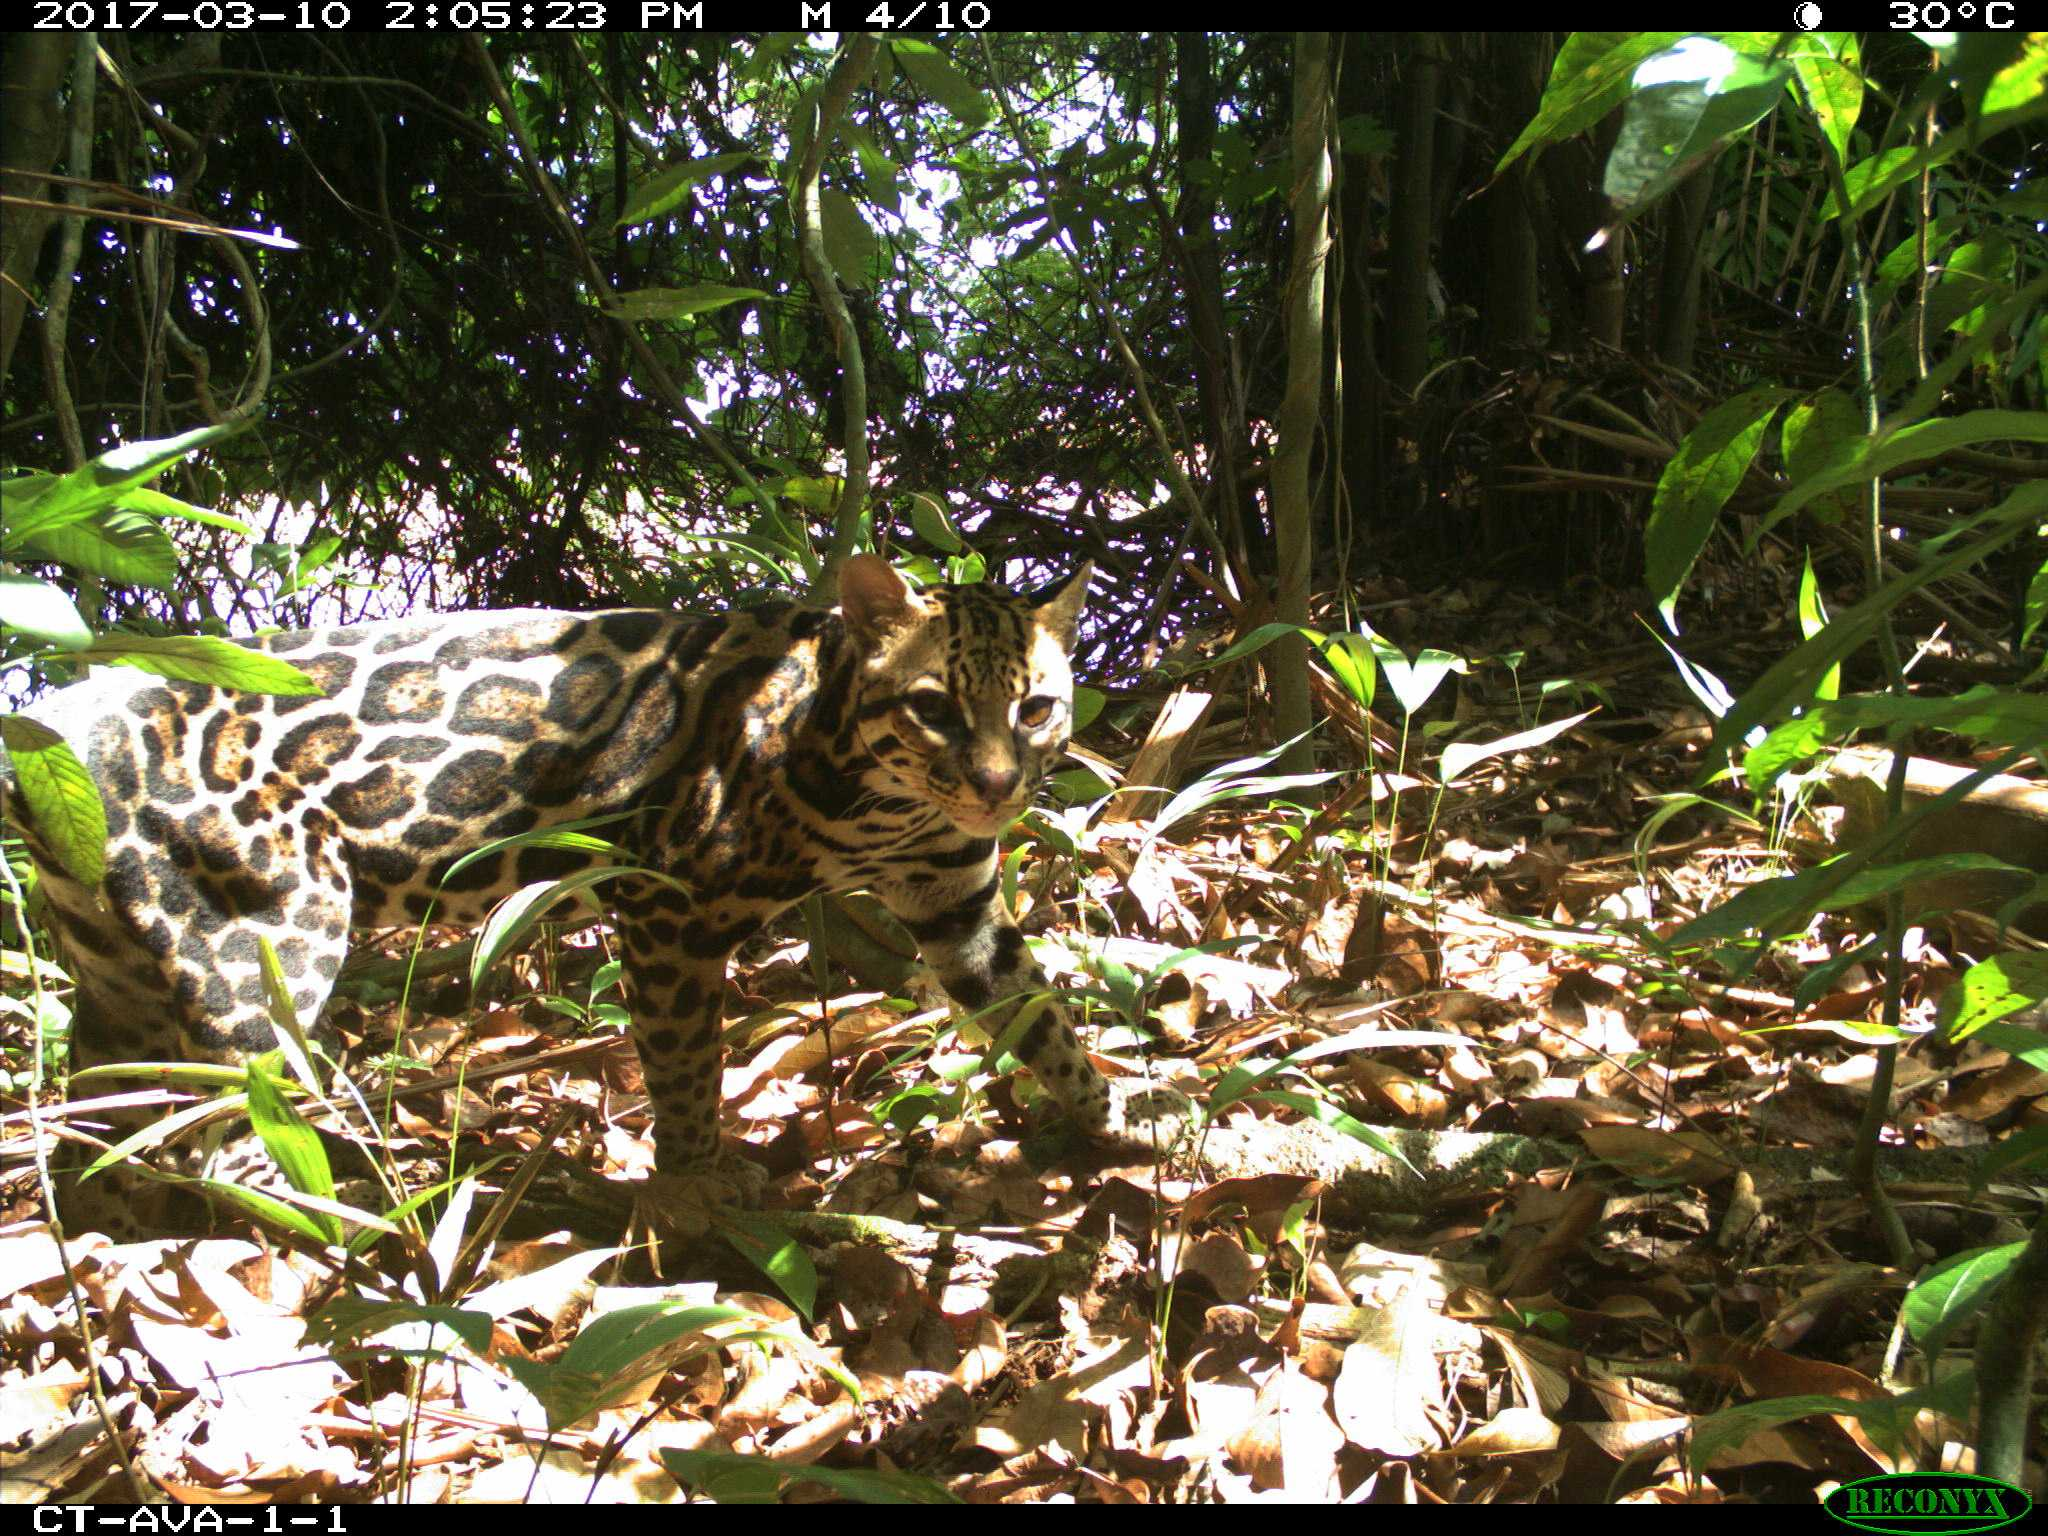 AVA-1-1, ocelot right dorsal view.jpg